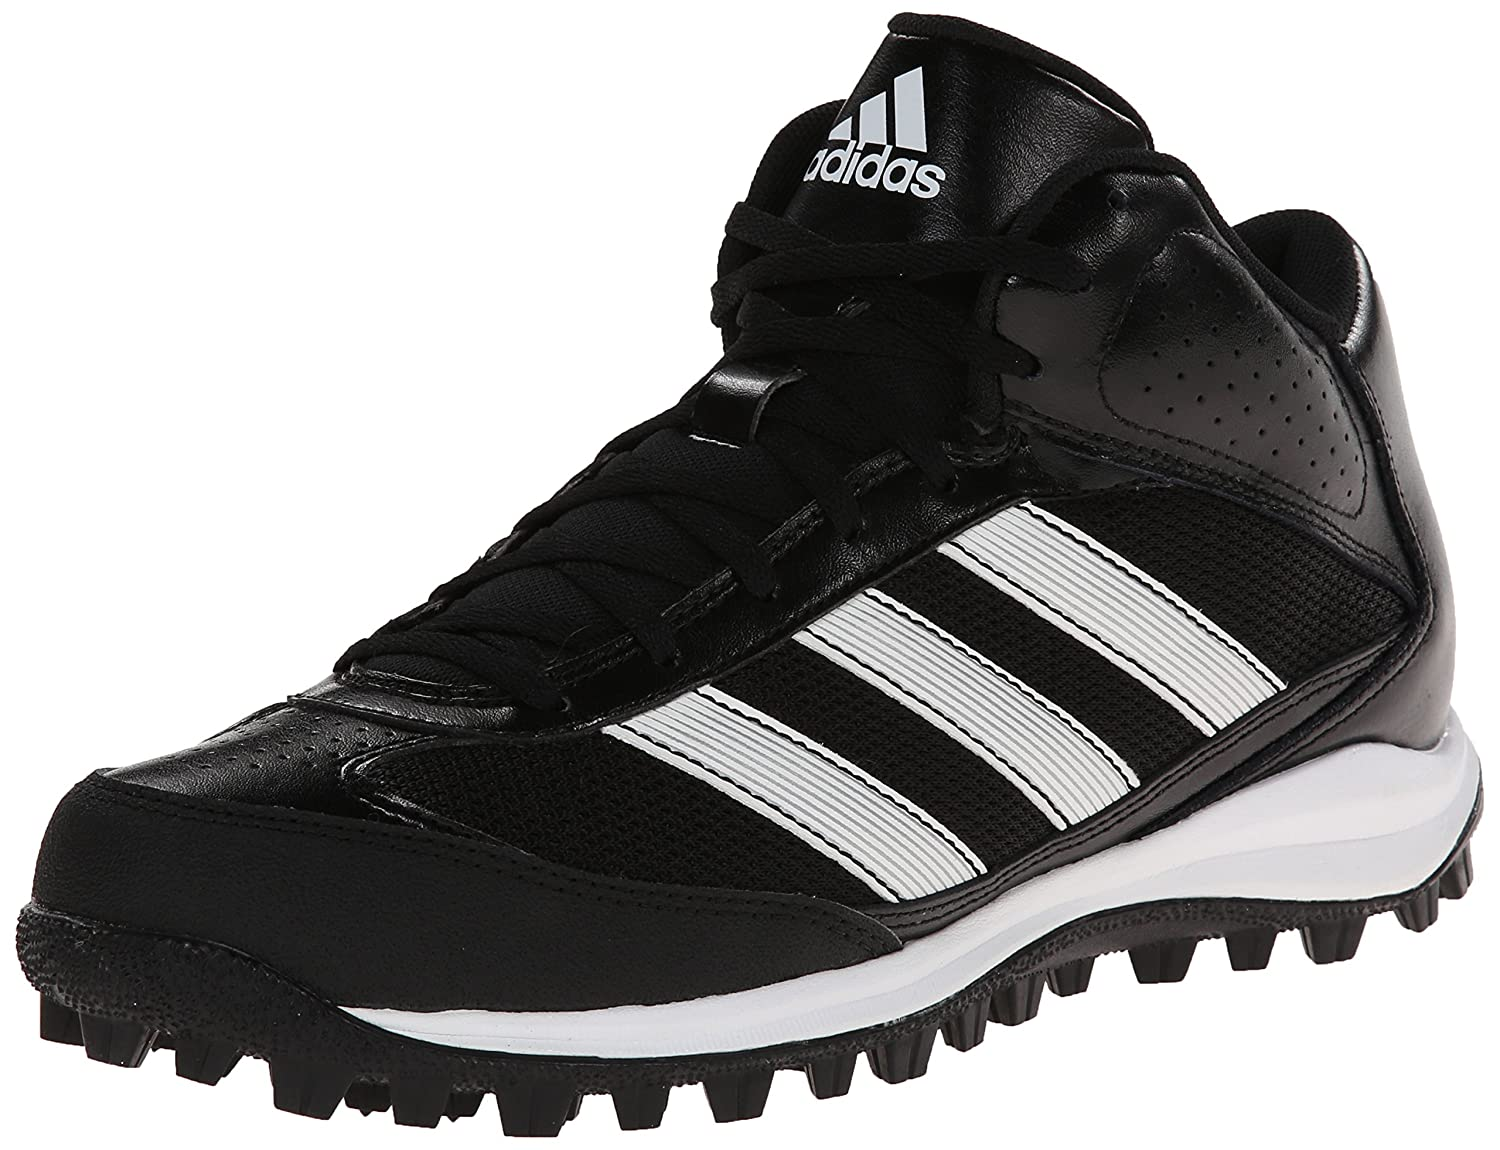 check out 0056f 70de6 Amazon.com  adidas Performance Mens Turf Hog LX Mid Football Cleat   Football